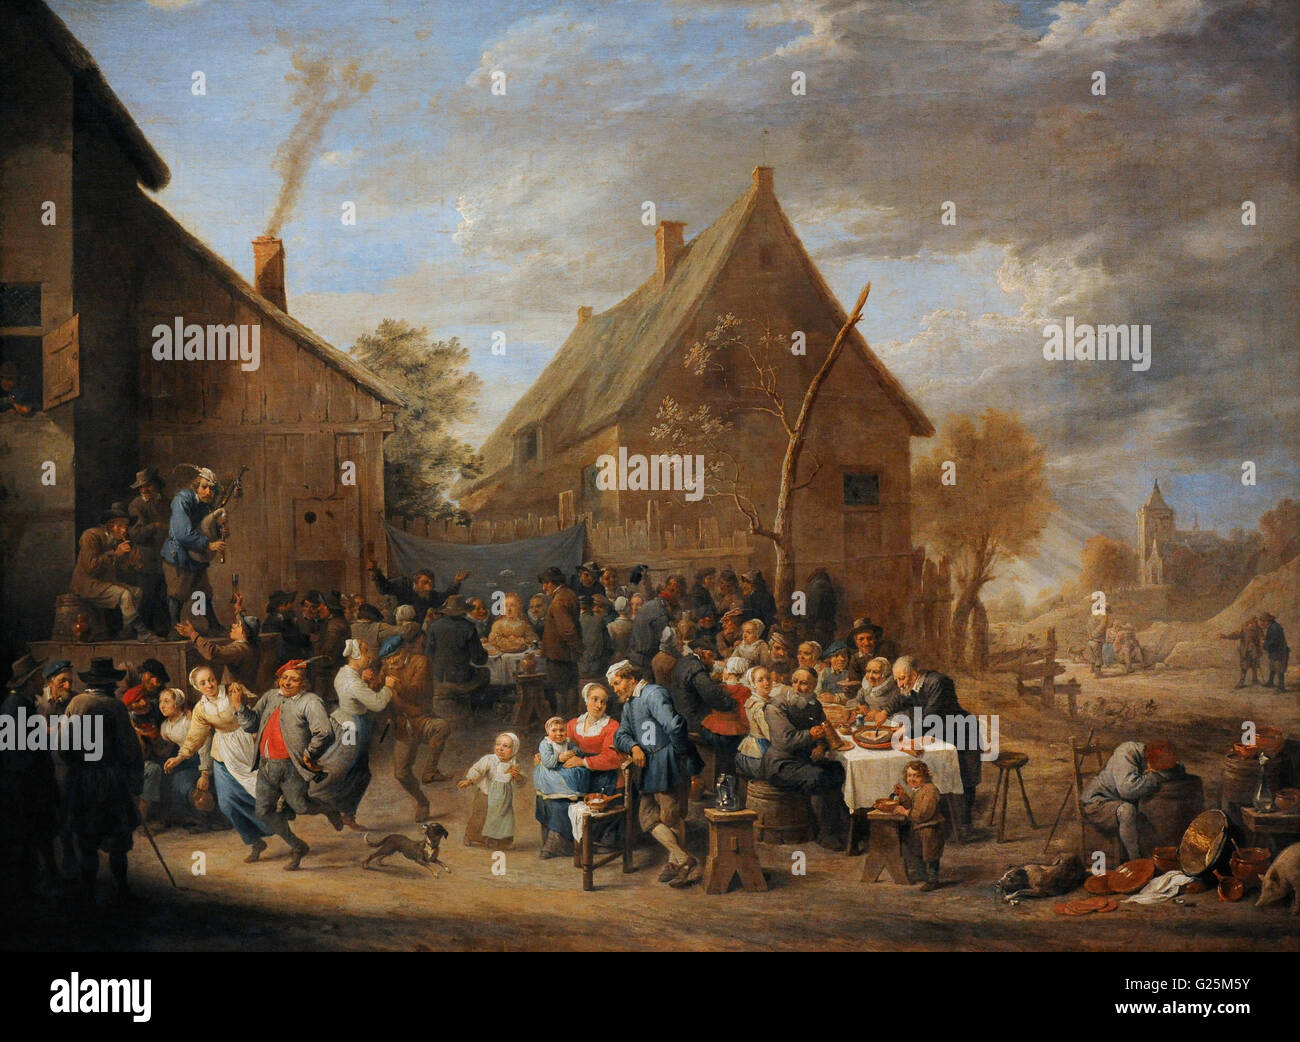 David Teniers the Younger (1610-1690). Baroque painter. Village Wedding, 1650. Oil on canvas. The State Hermitage - Stock Image